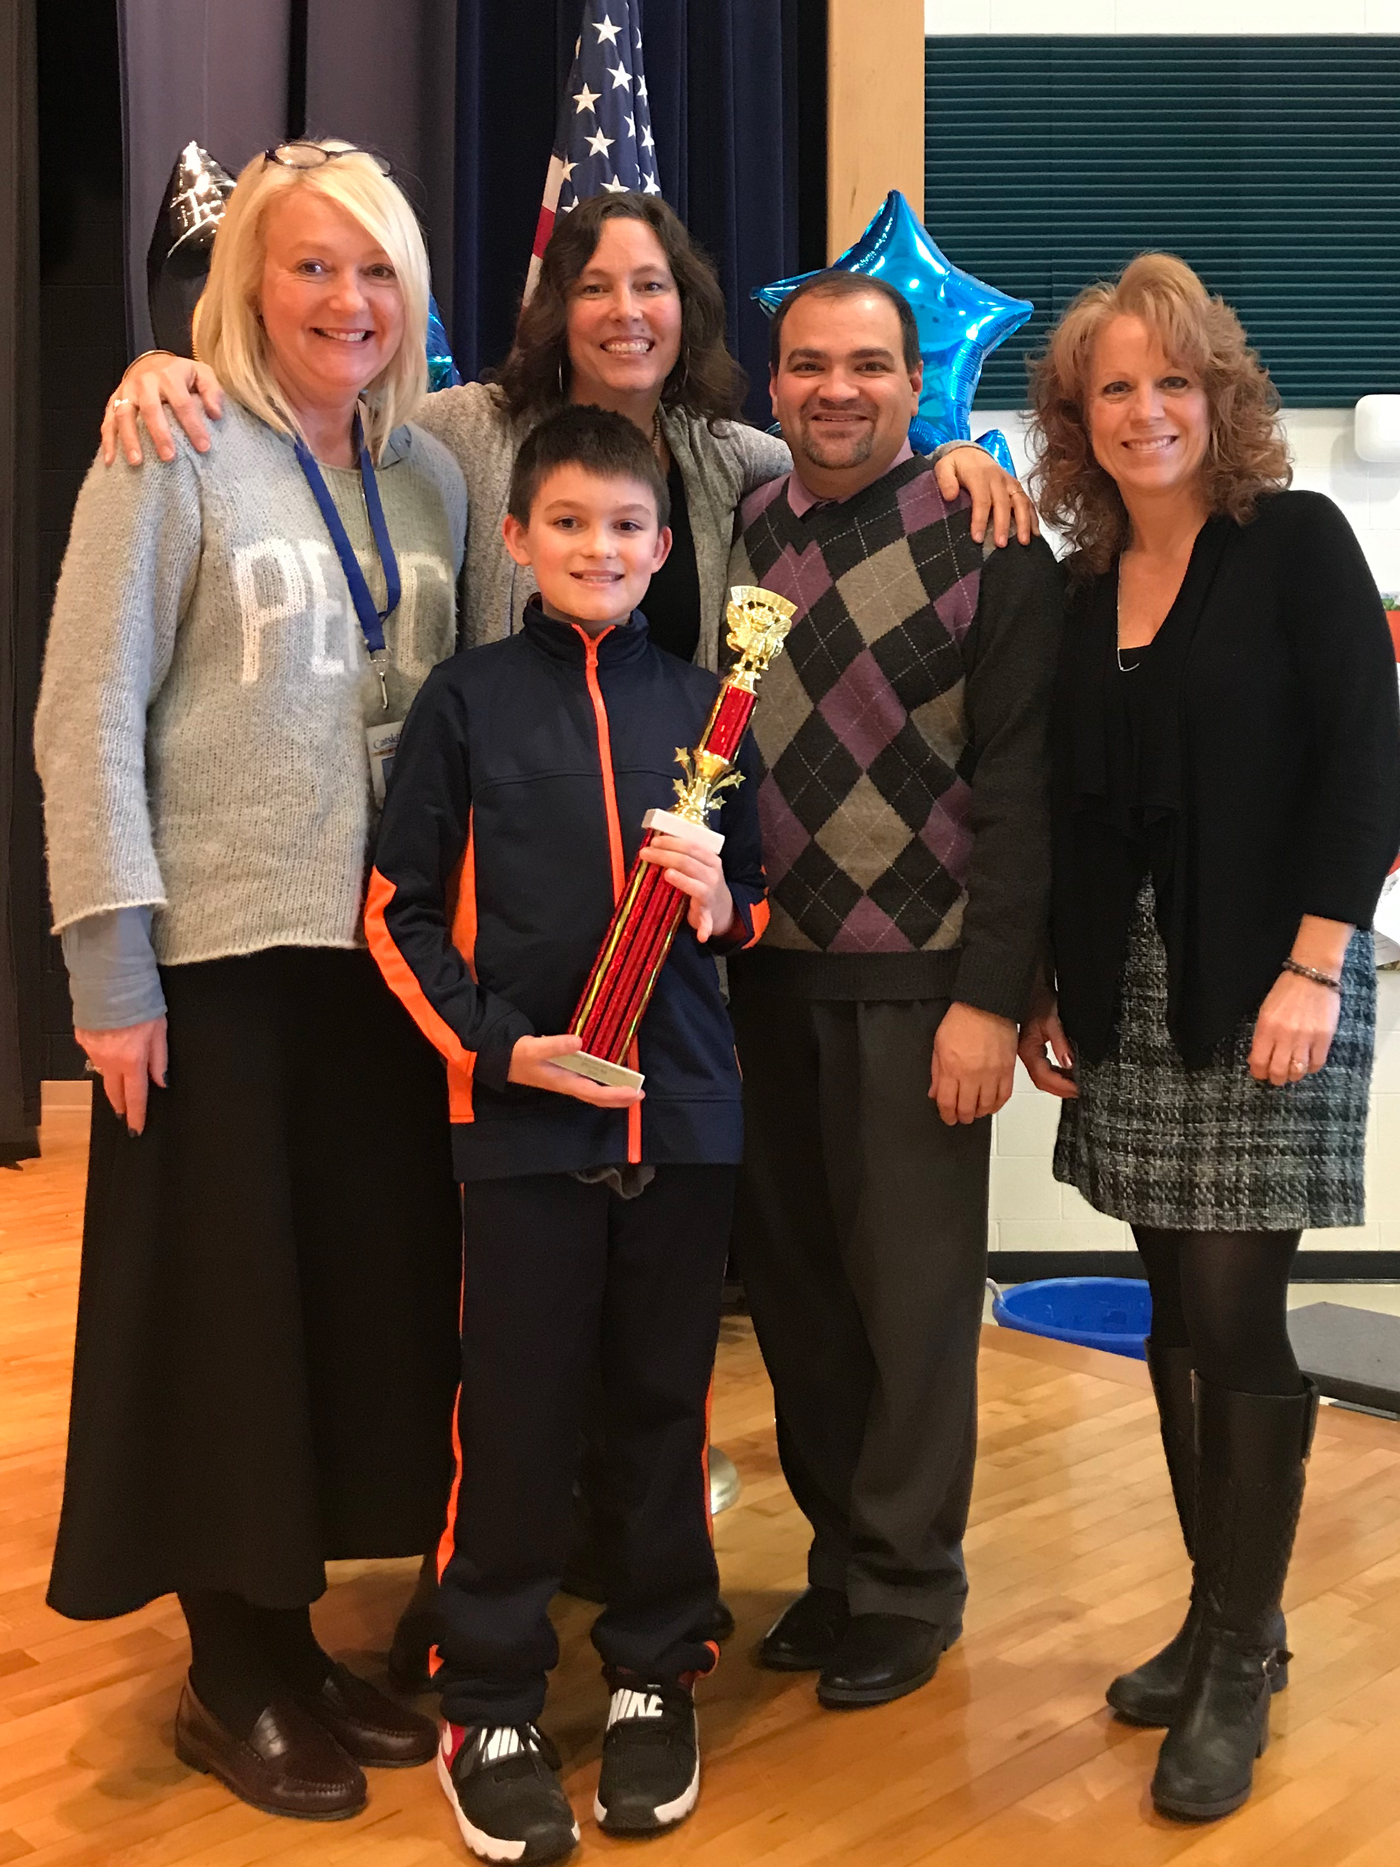 CES Spelling Bee Champion Billy McMullen is joined by (left to right) Mrs. Lisa Schlenker, Catskill Elementary School Assistant Principal, and Catskill Elementary School teachers and Spelling Bee Committee members Mrs. Alexandra Standish, Mr. Matthew Luvera, Mrs. Heather Schindler.